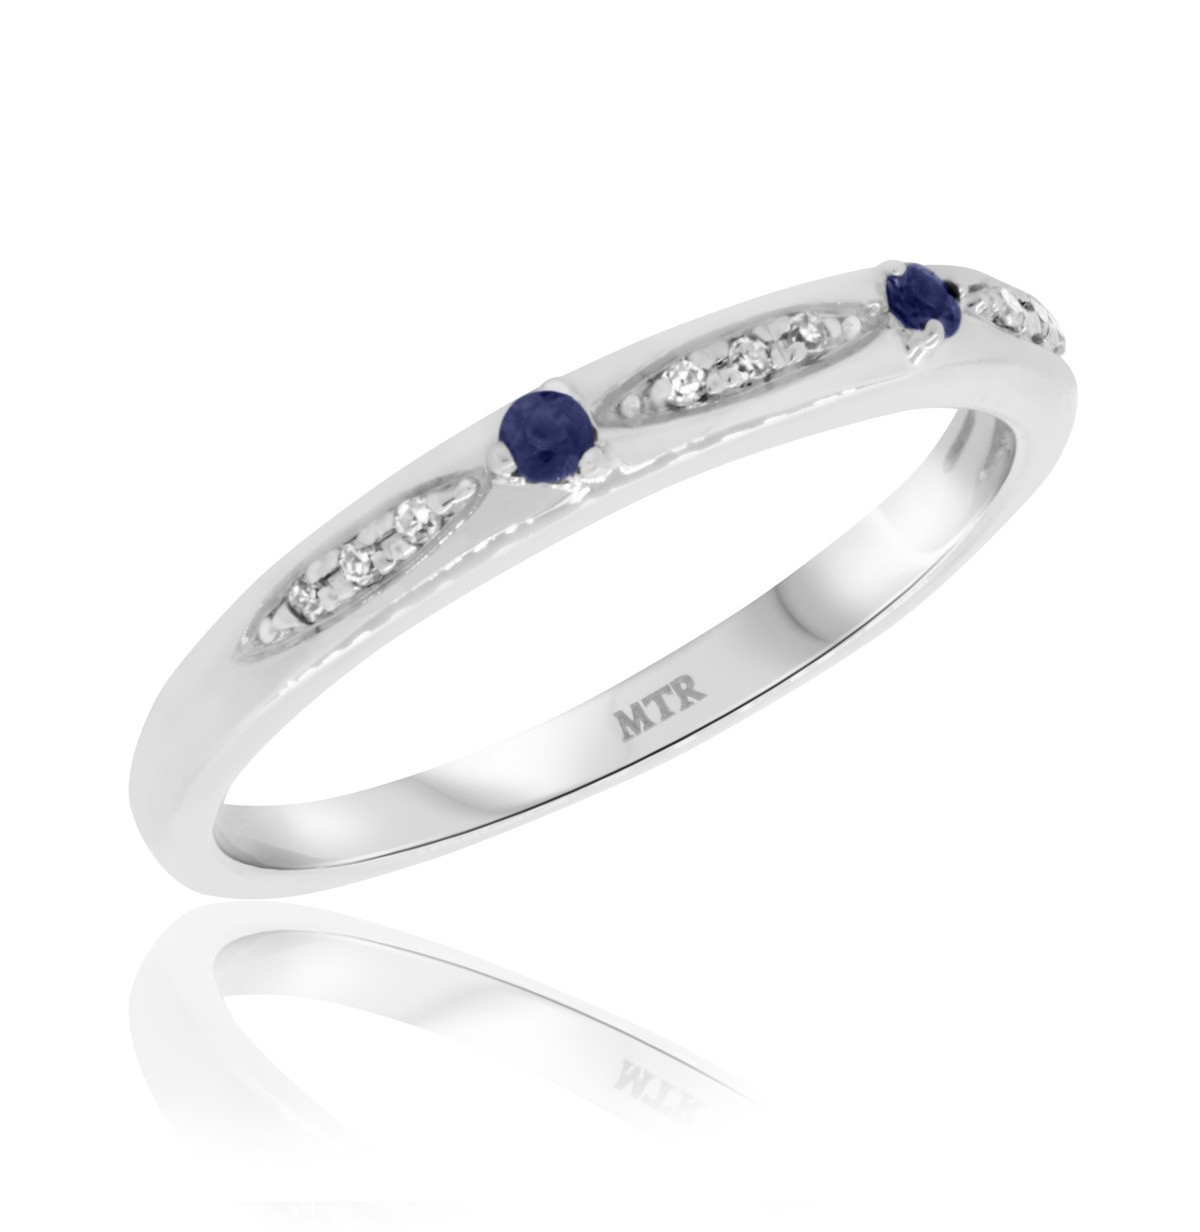 1/10 Carat T.W. Sapphire Ladies Wedding Band  10K White Gold